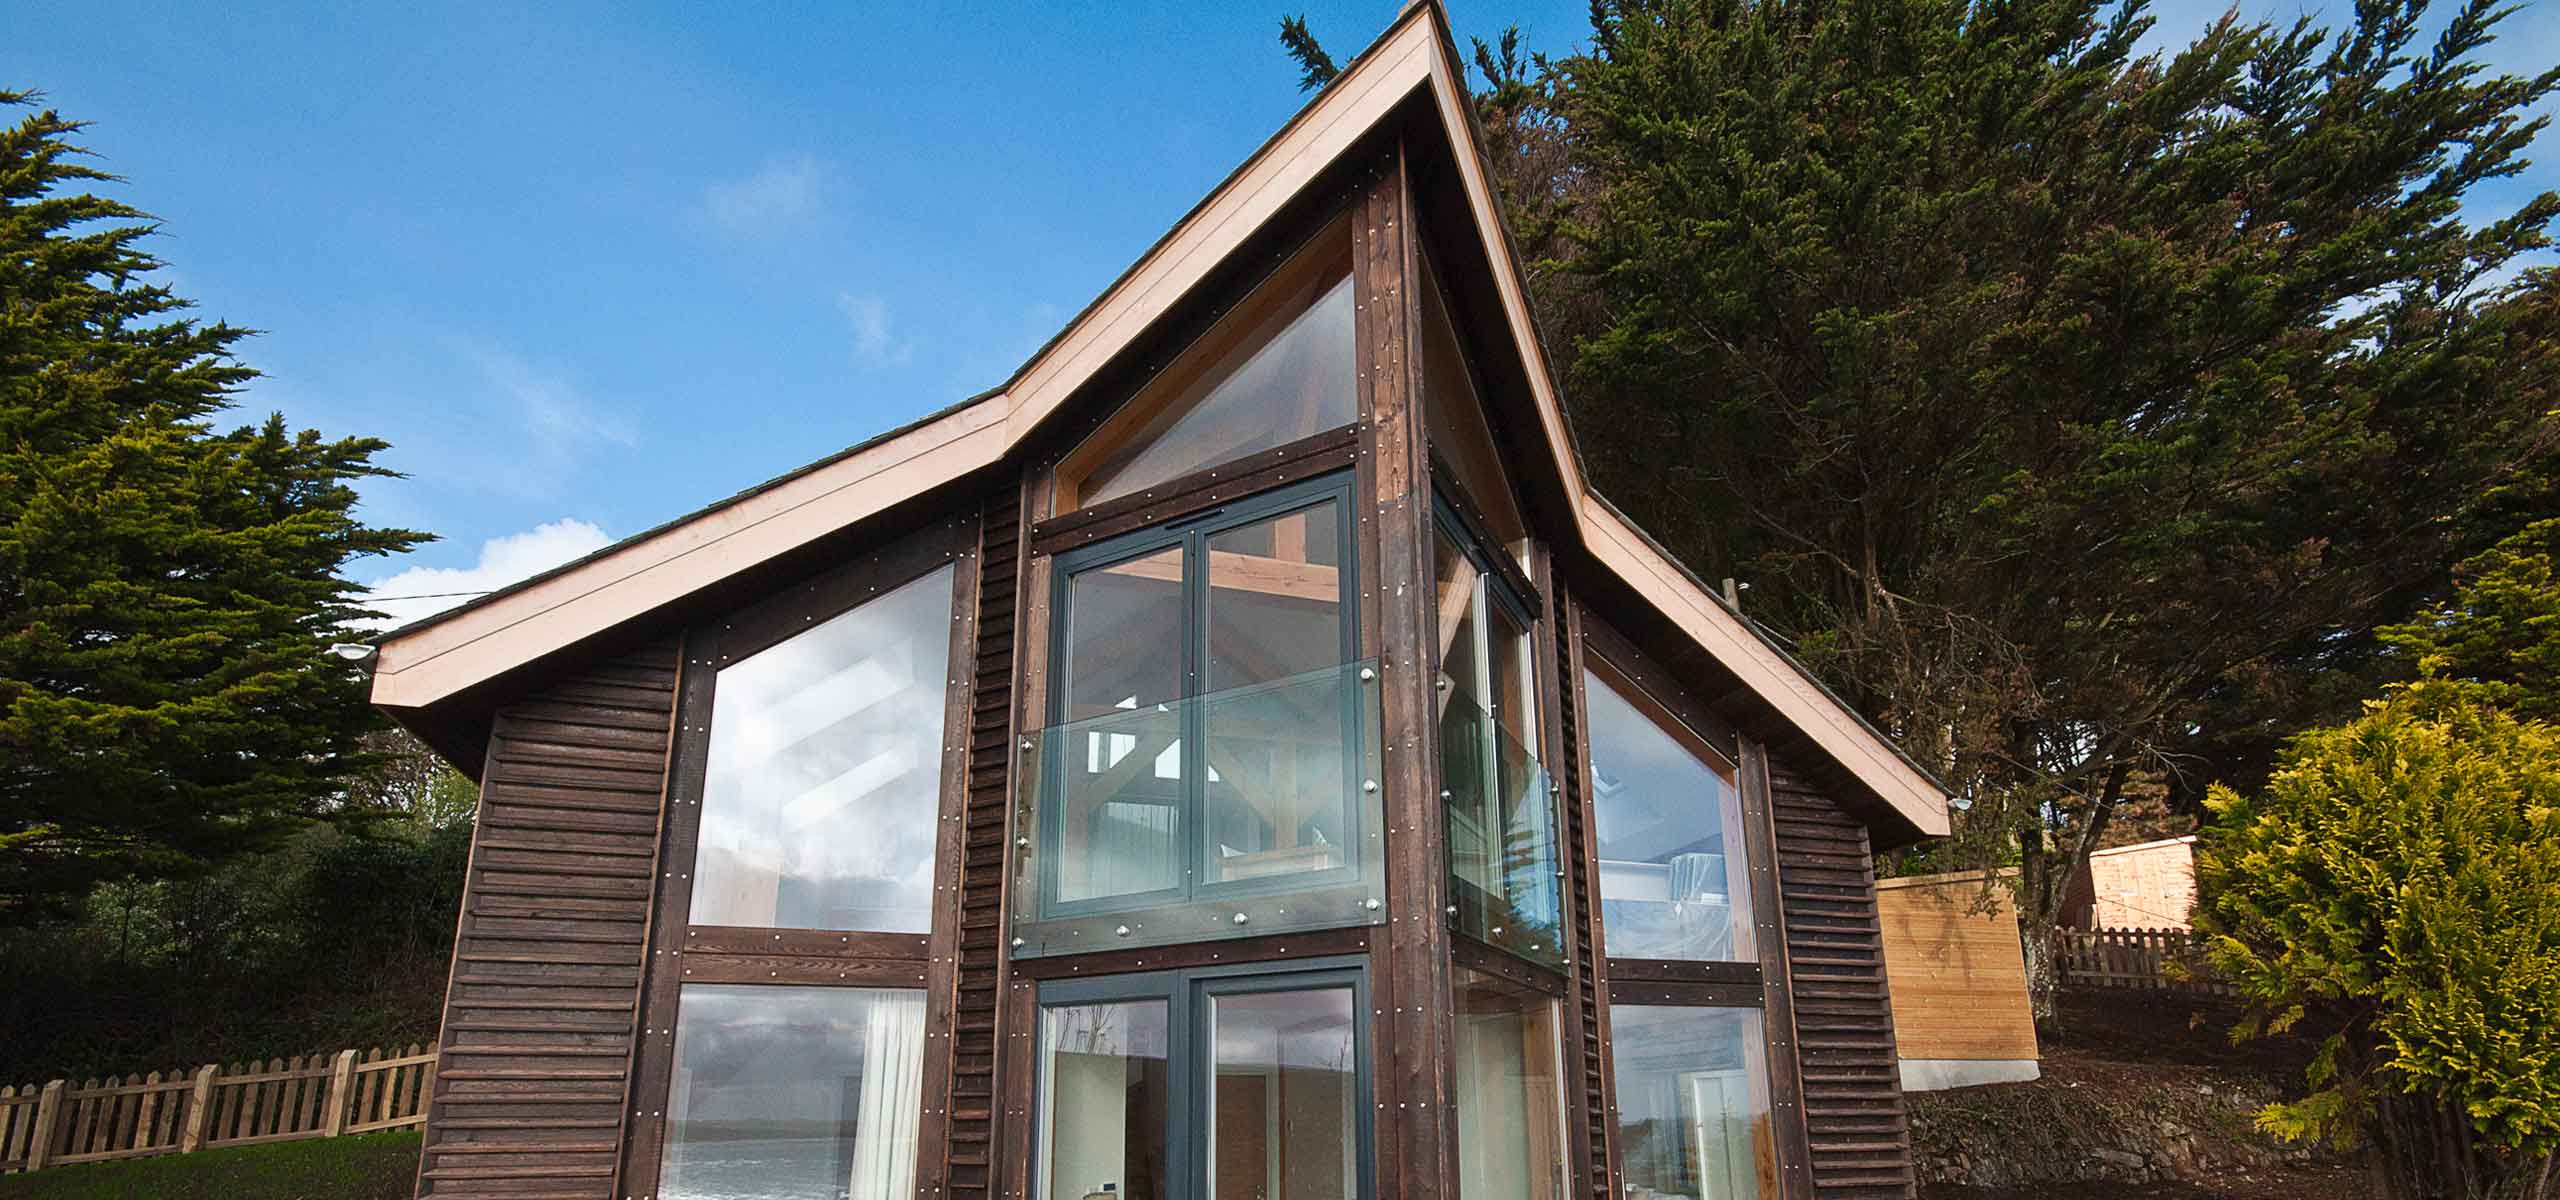 The Chalet architecture in Cornwall